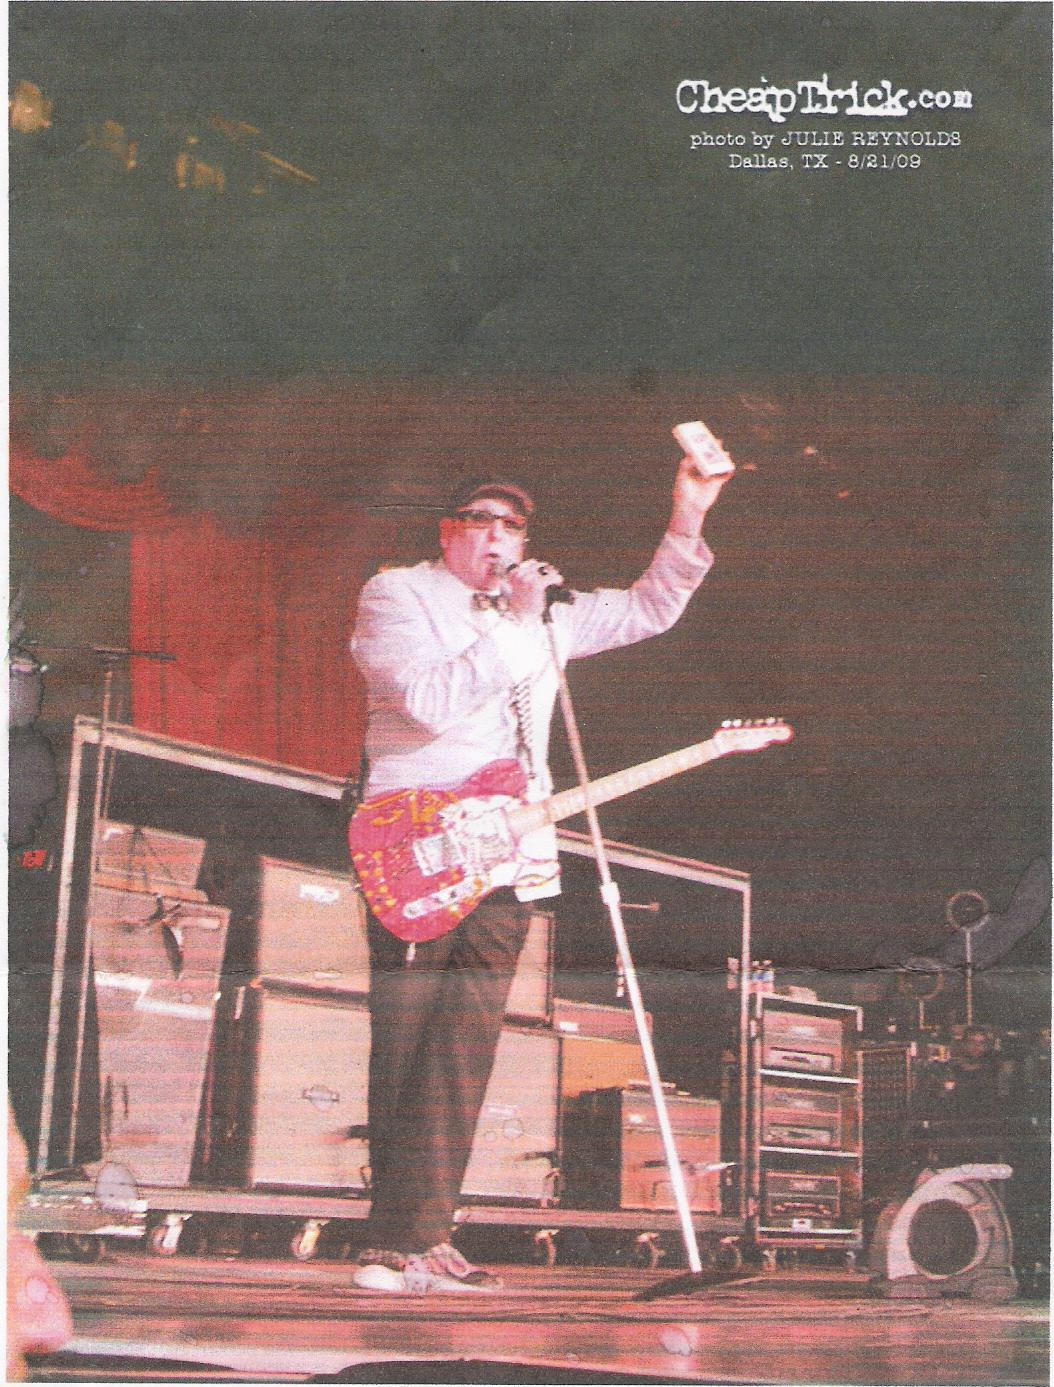 cheap trick on stage with 8-track